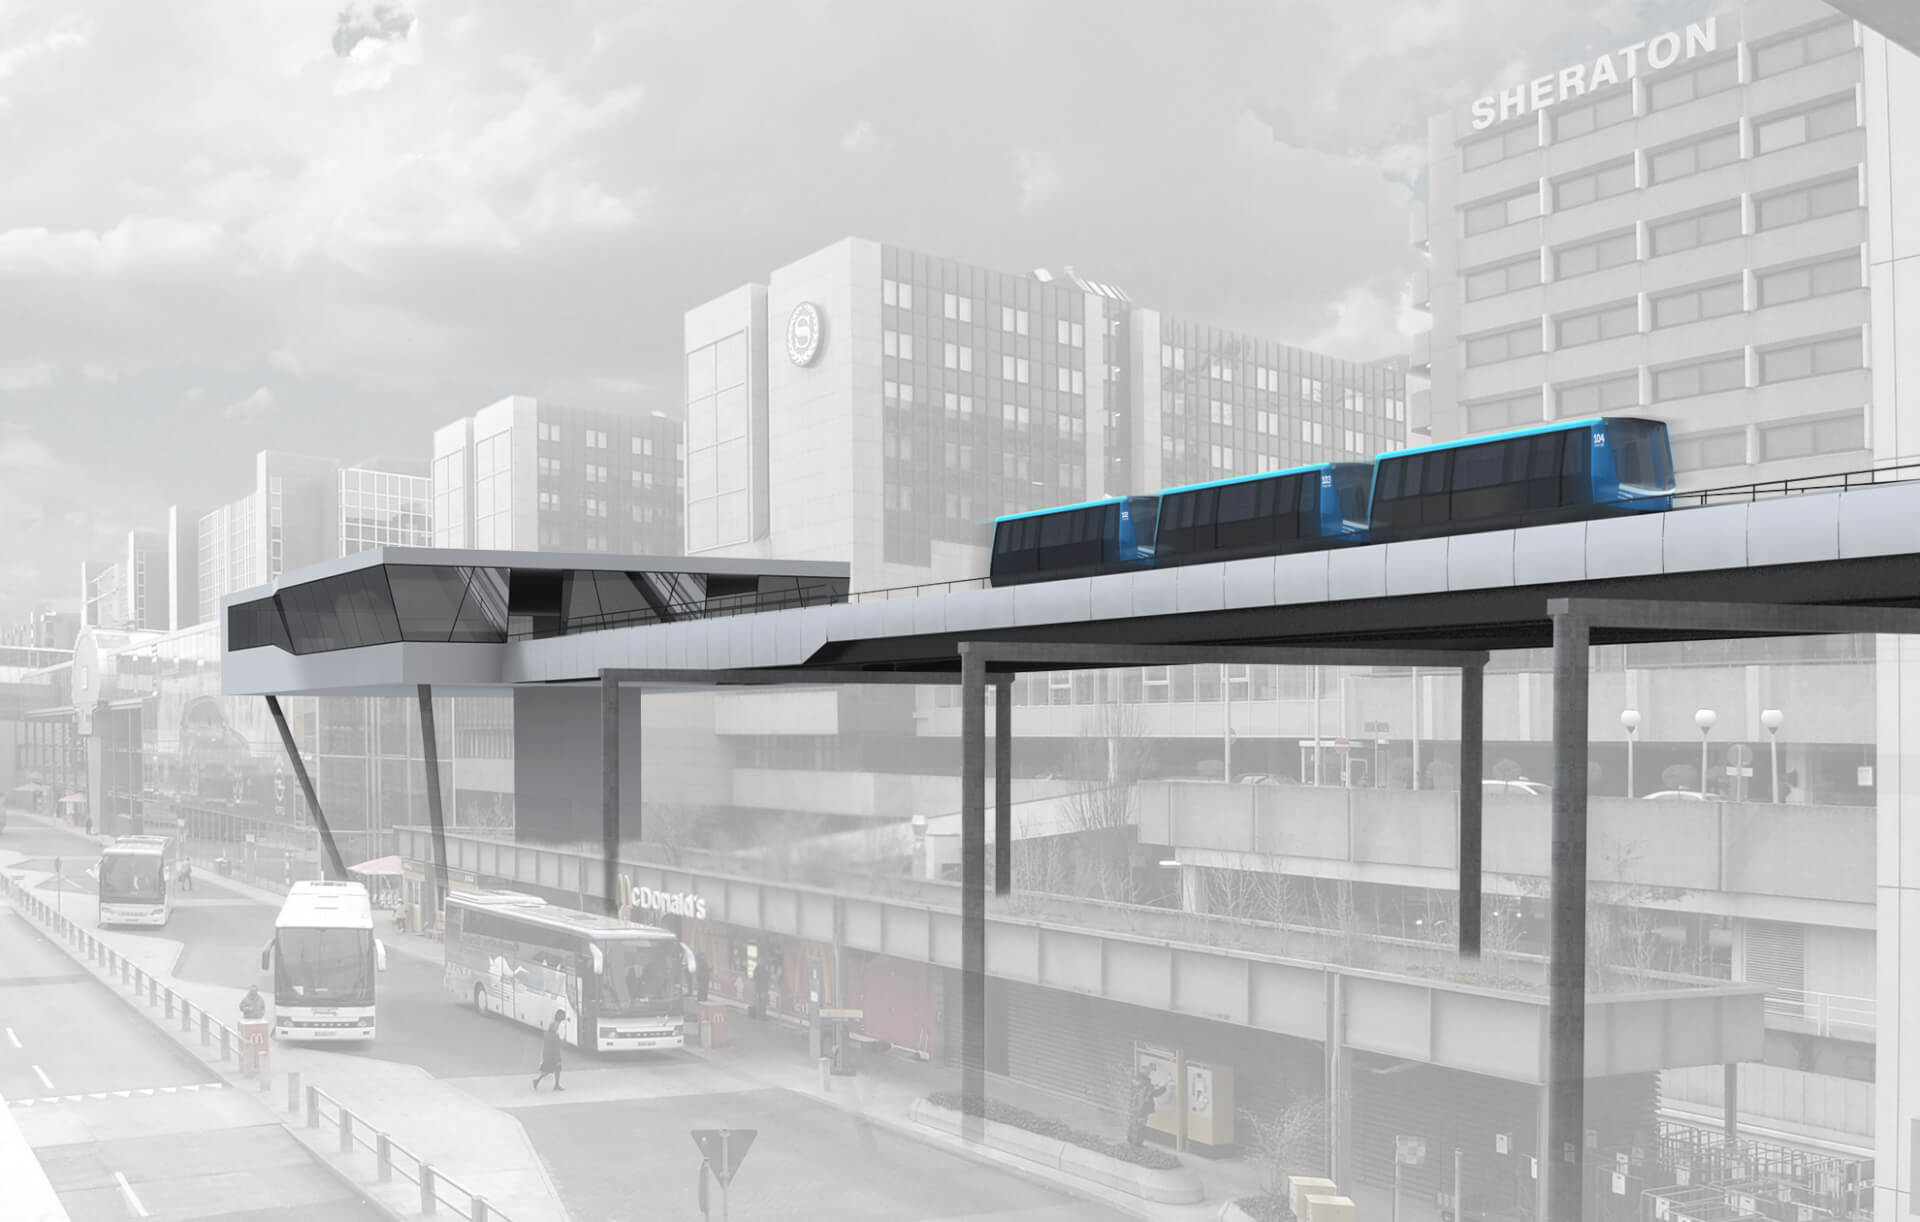 Rendering of a modern automated train system